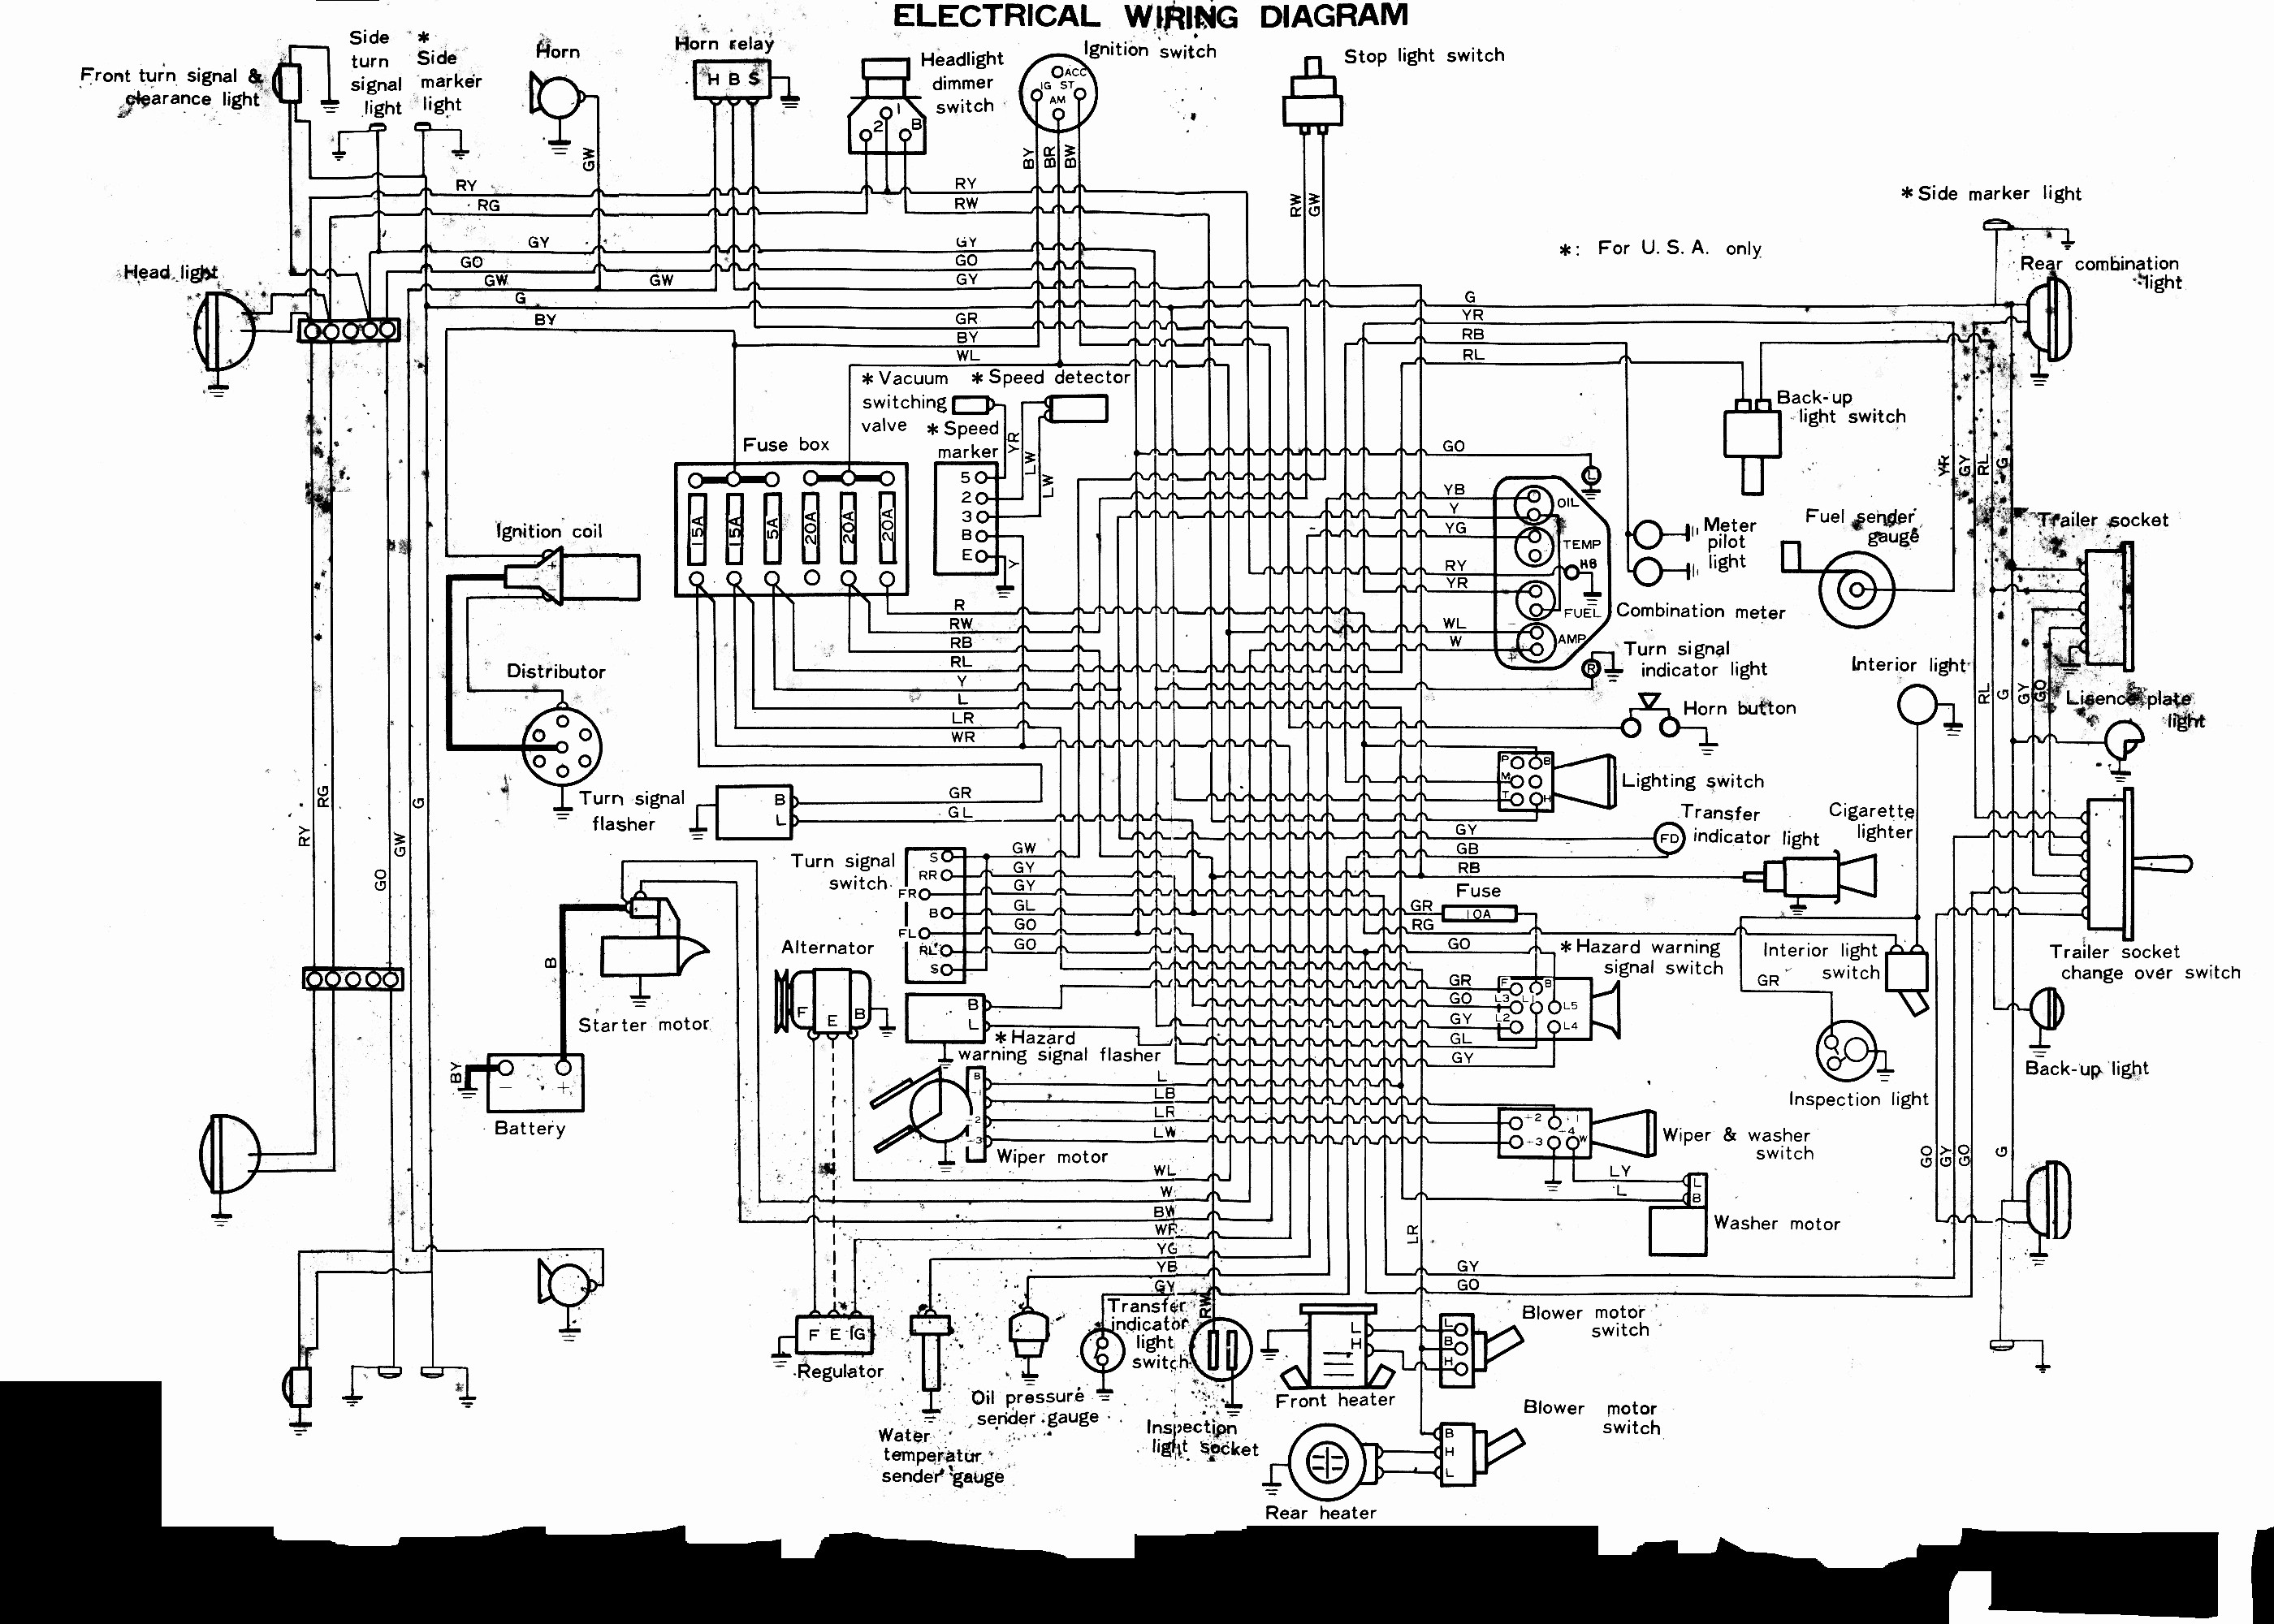 98 Mazda Protege Wiring Diagram Free Picture Schematics 2003 Mack Truck Custom Chrysler Cirrus Rh Bravebros Co 2000 Rear Suspension Lx Intake Manifold